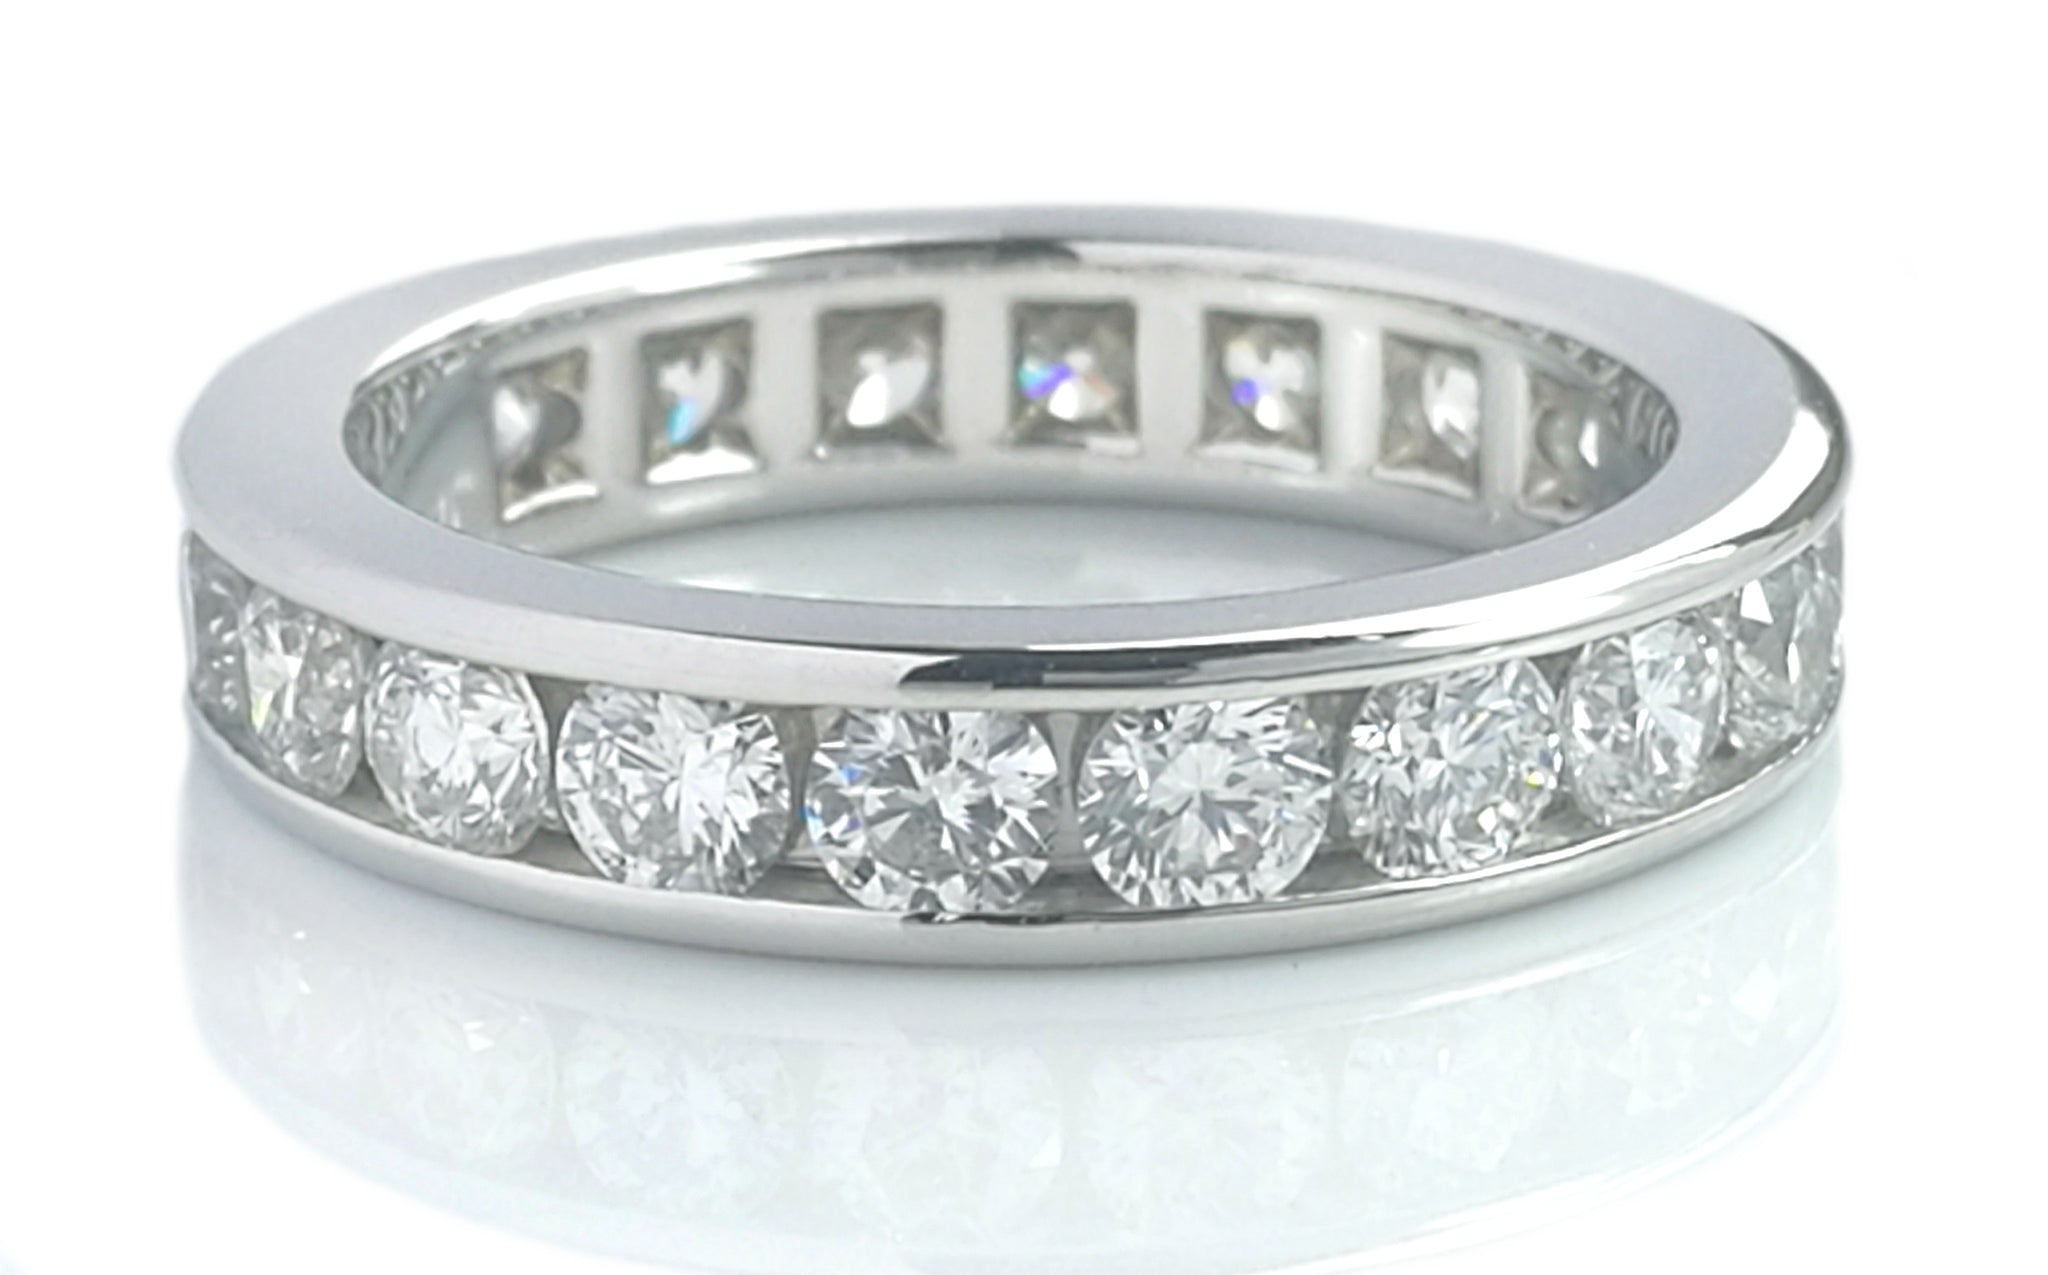 Tiffany & Co. 1.80ct 3.9mm Full Circle Channel-Set Diamond Wedding Band, Sz L